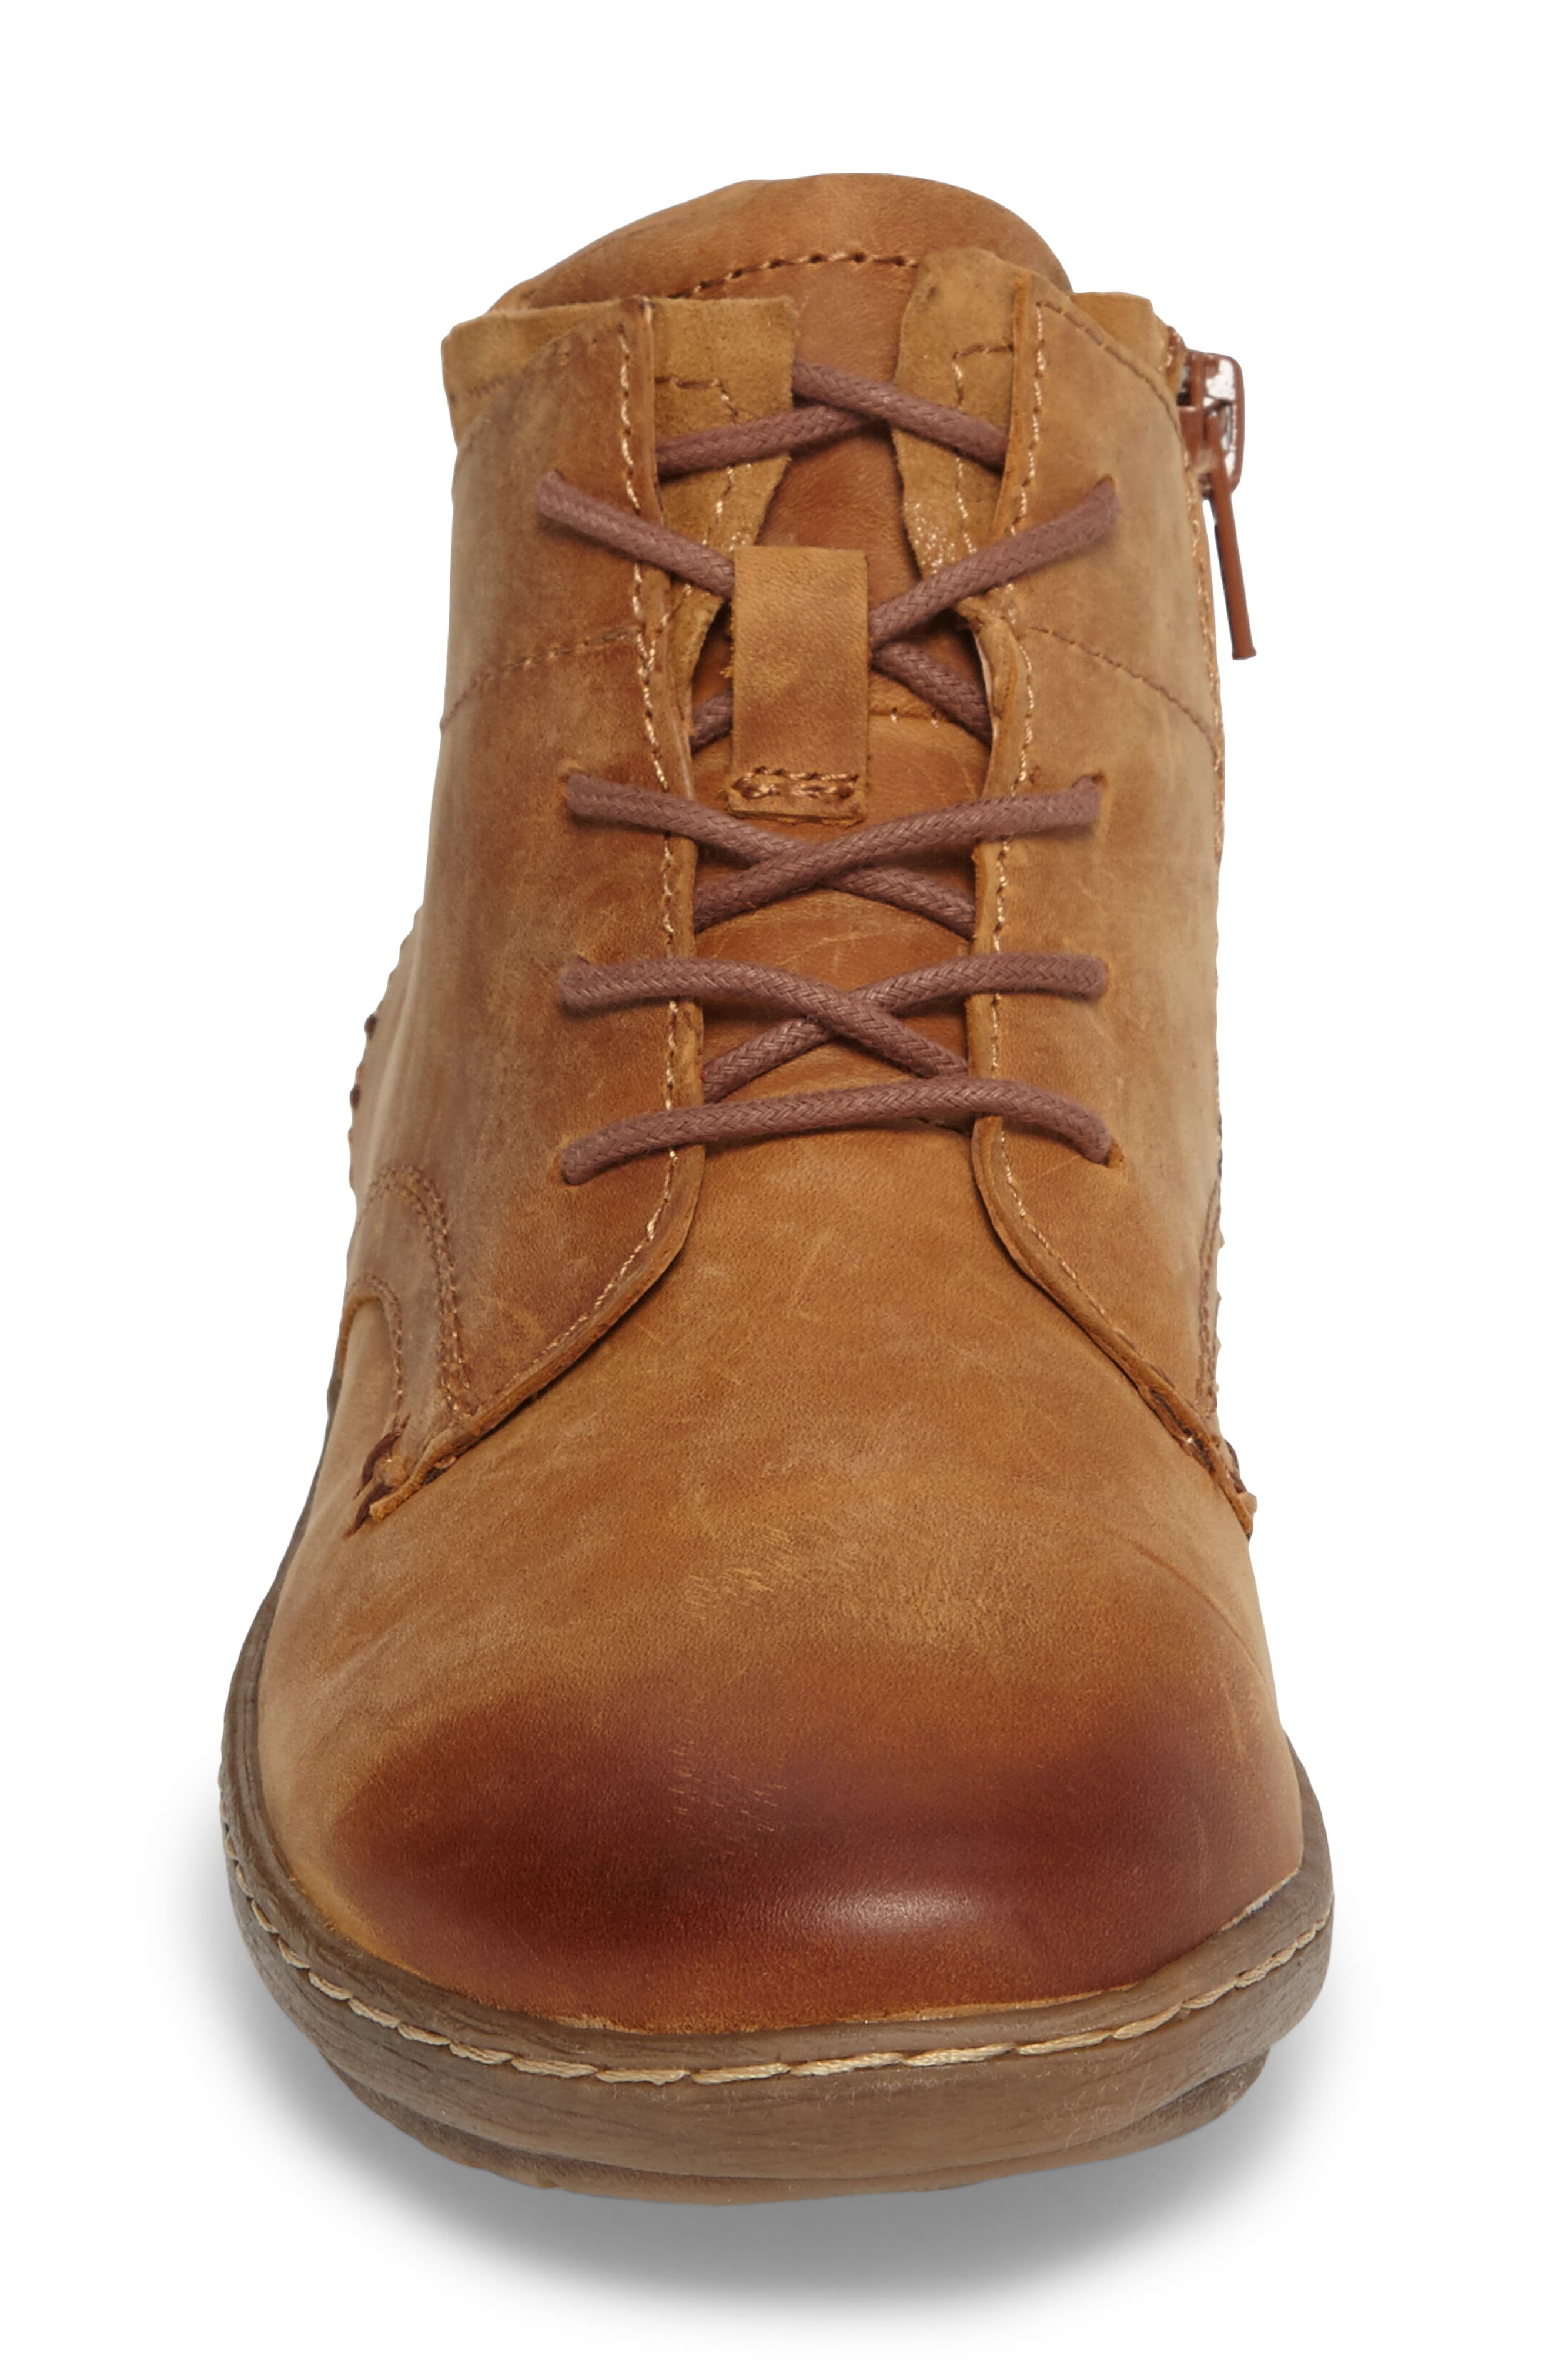 Cascade Boot,                             Alternate thumbnail 4, color,                             Almond Tan Leather